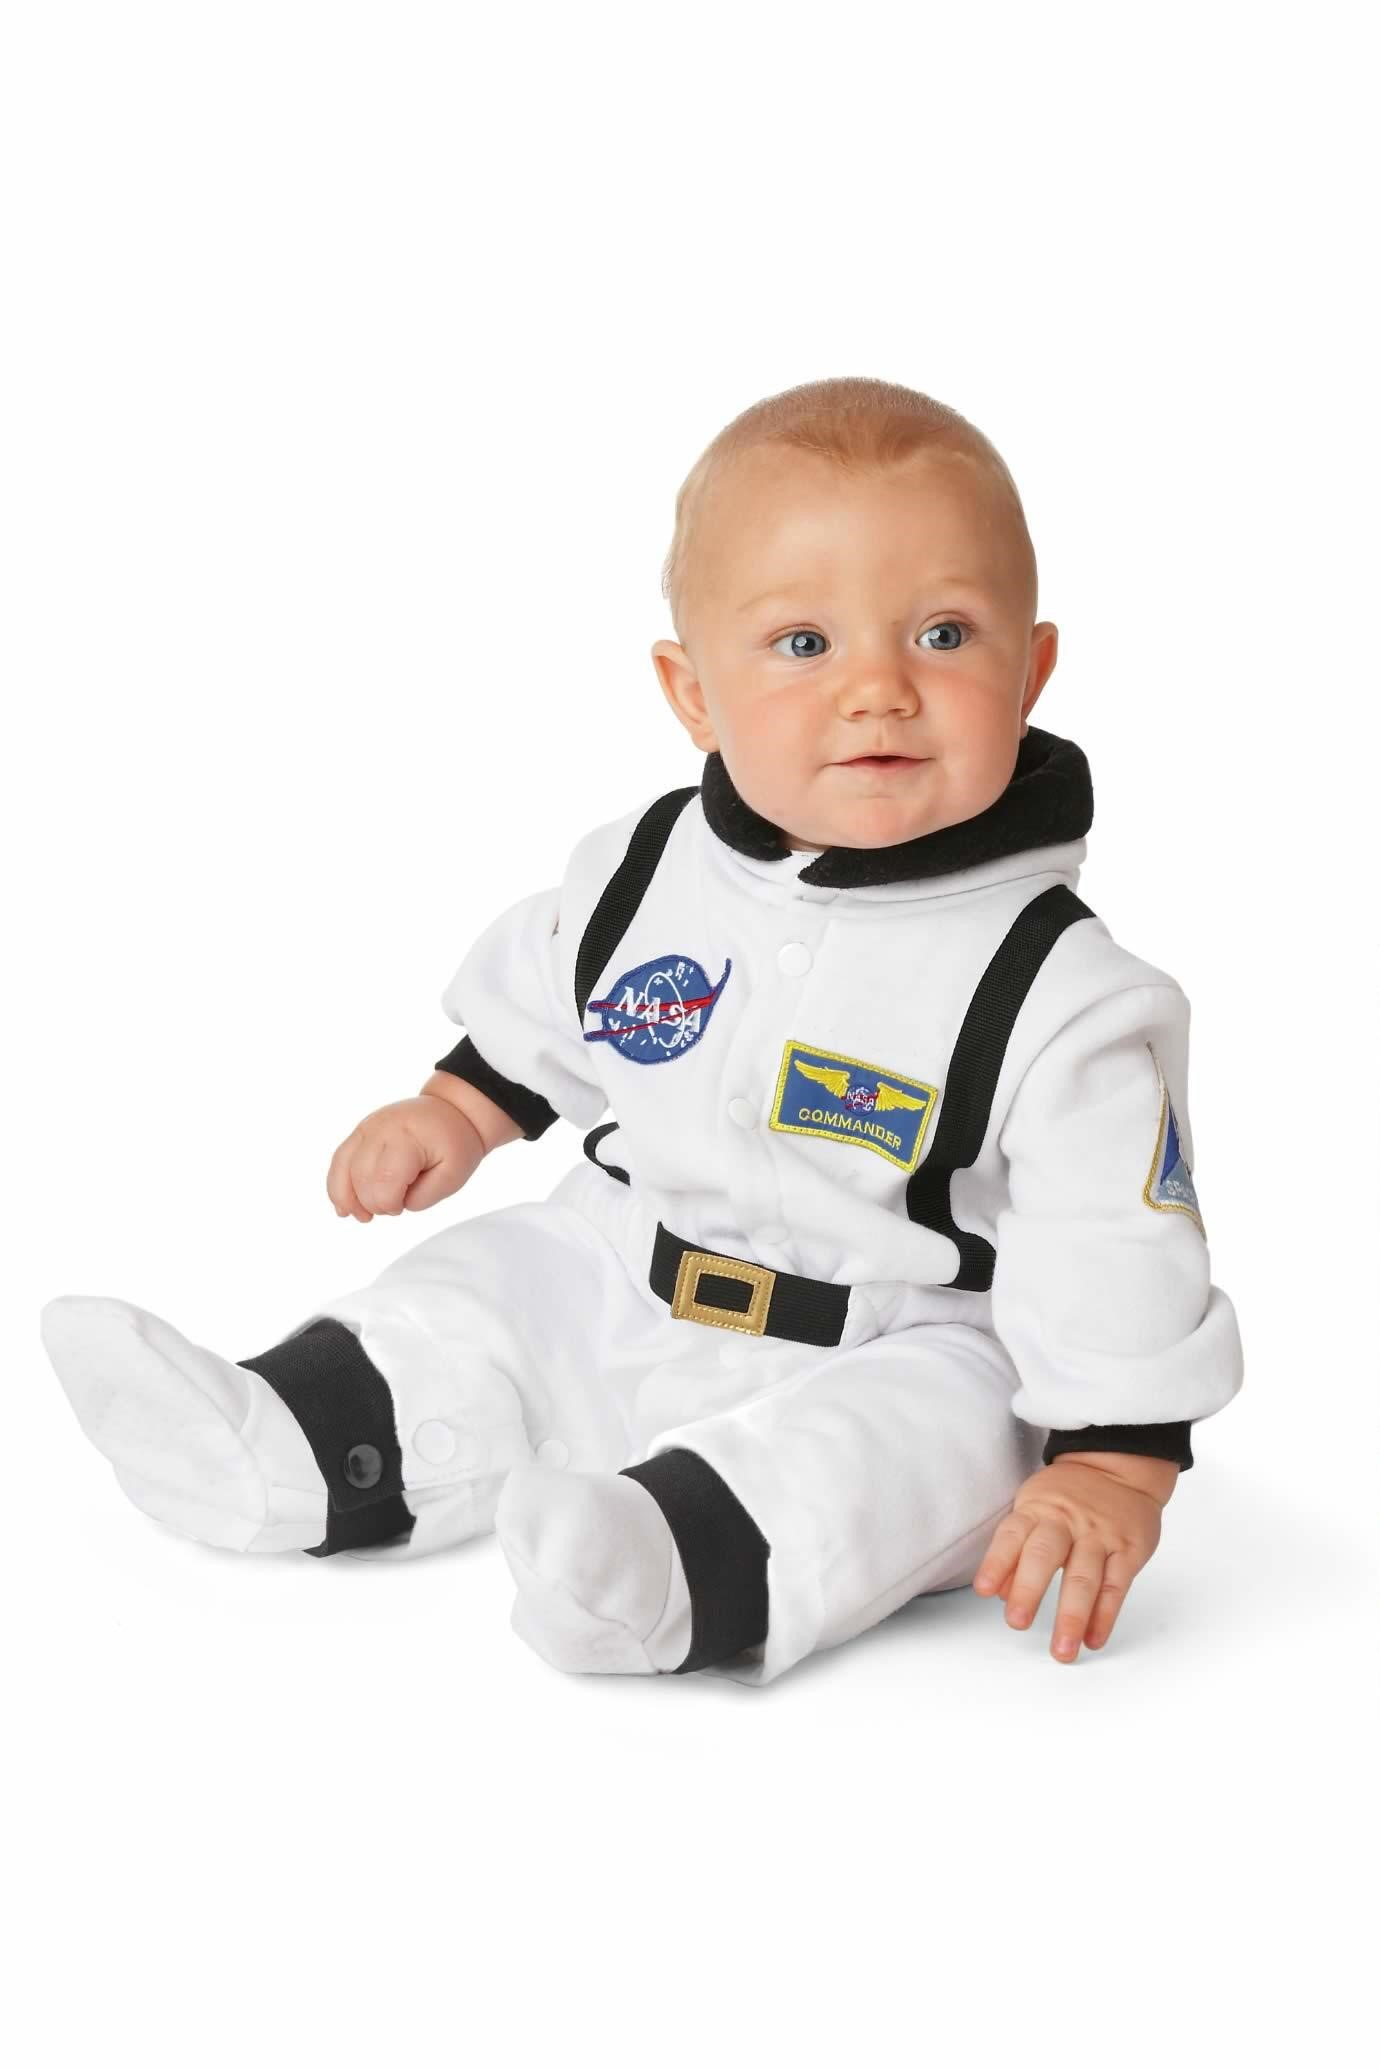 Cute Halloween costumes for babies: Baby Astronaut